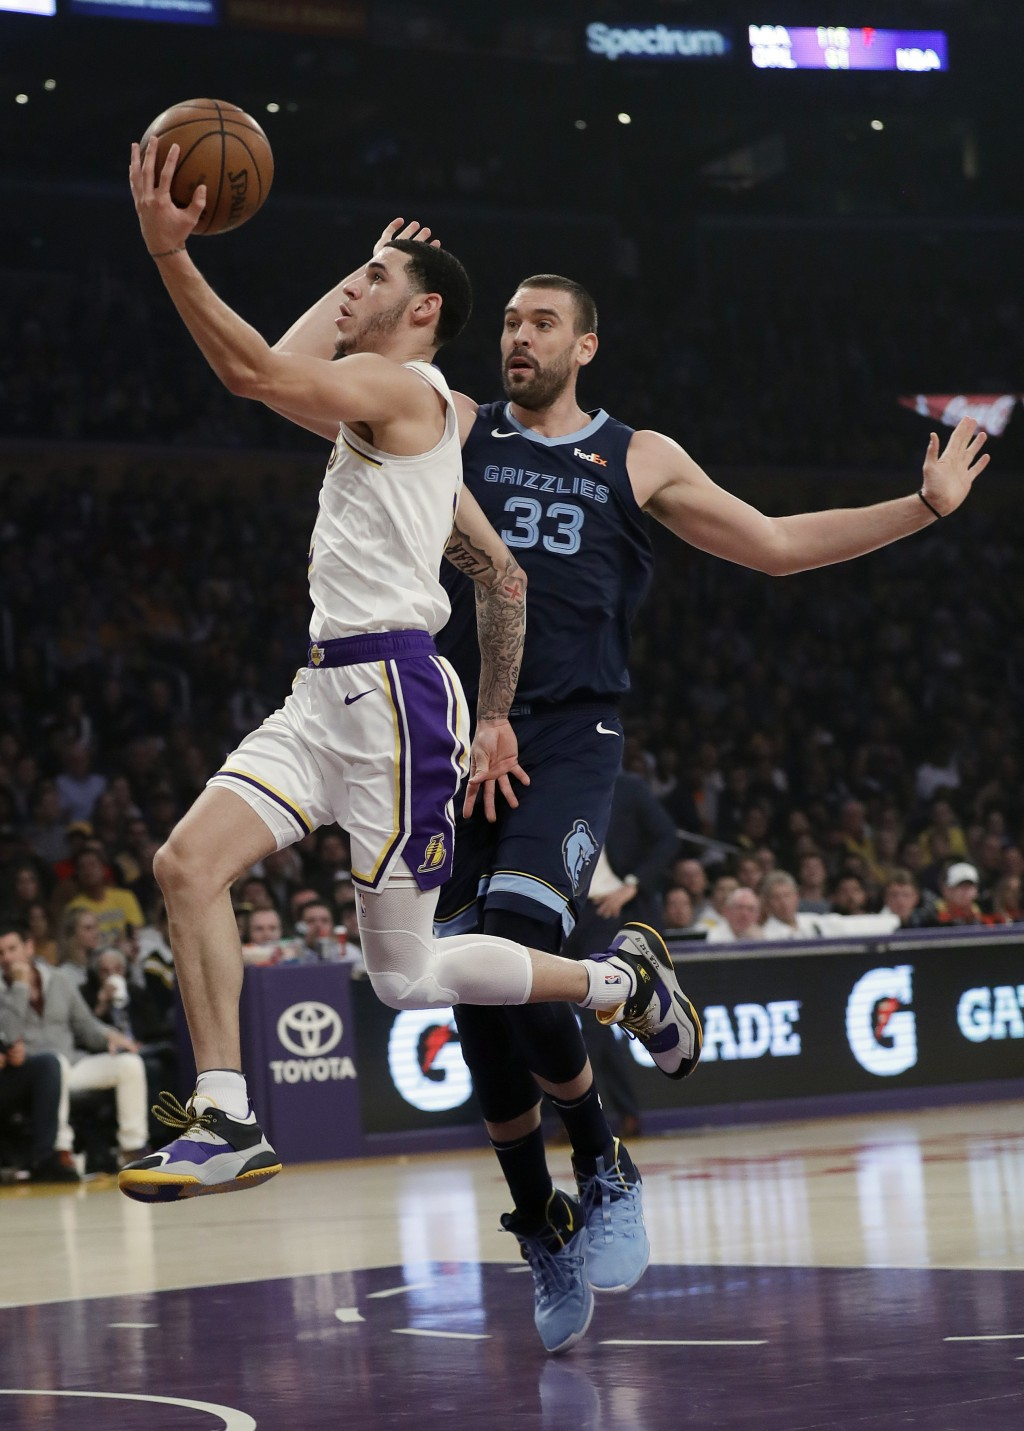 Los Angeles Lakers' Lonzo Ball, left, drives past Memphis Grizzlies' Marc Gasol (33) during the first half of an NBA basketball game Sunday, Dec. 23, ...